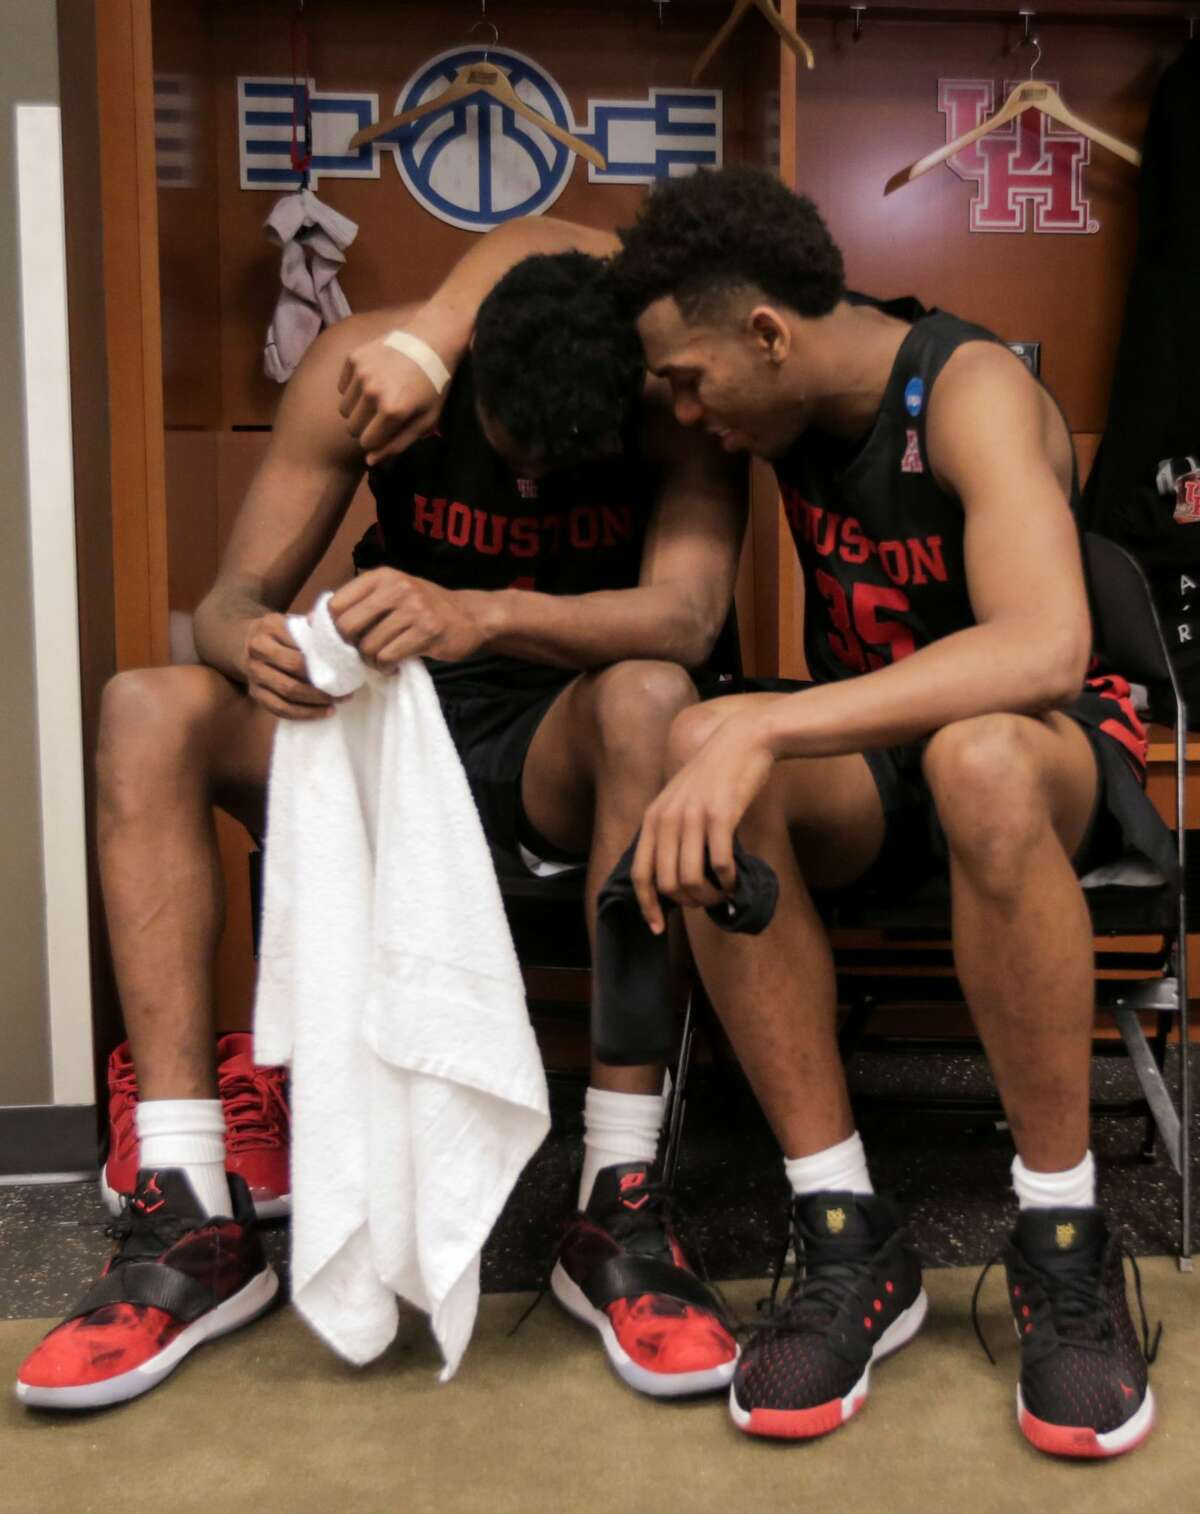 Houston center Chris Harris Jr. (1) and Houston forward Fabian White Jr. (35) embrace in the locker room after the Cougars were eliminated from the NCAA Tournament with a 62-58 loss to Kentucky in the Midwest Regional at Sprint Center in Kansas City on Friday, March 29, 2019.